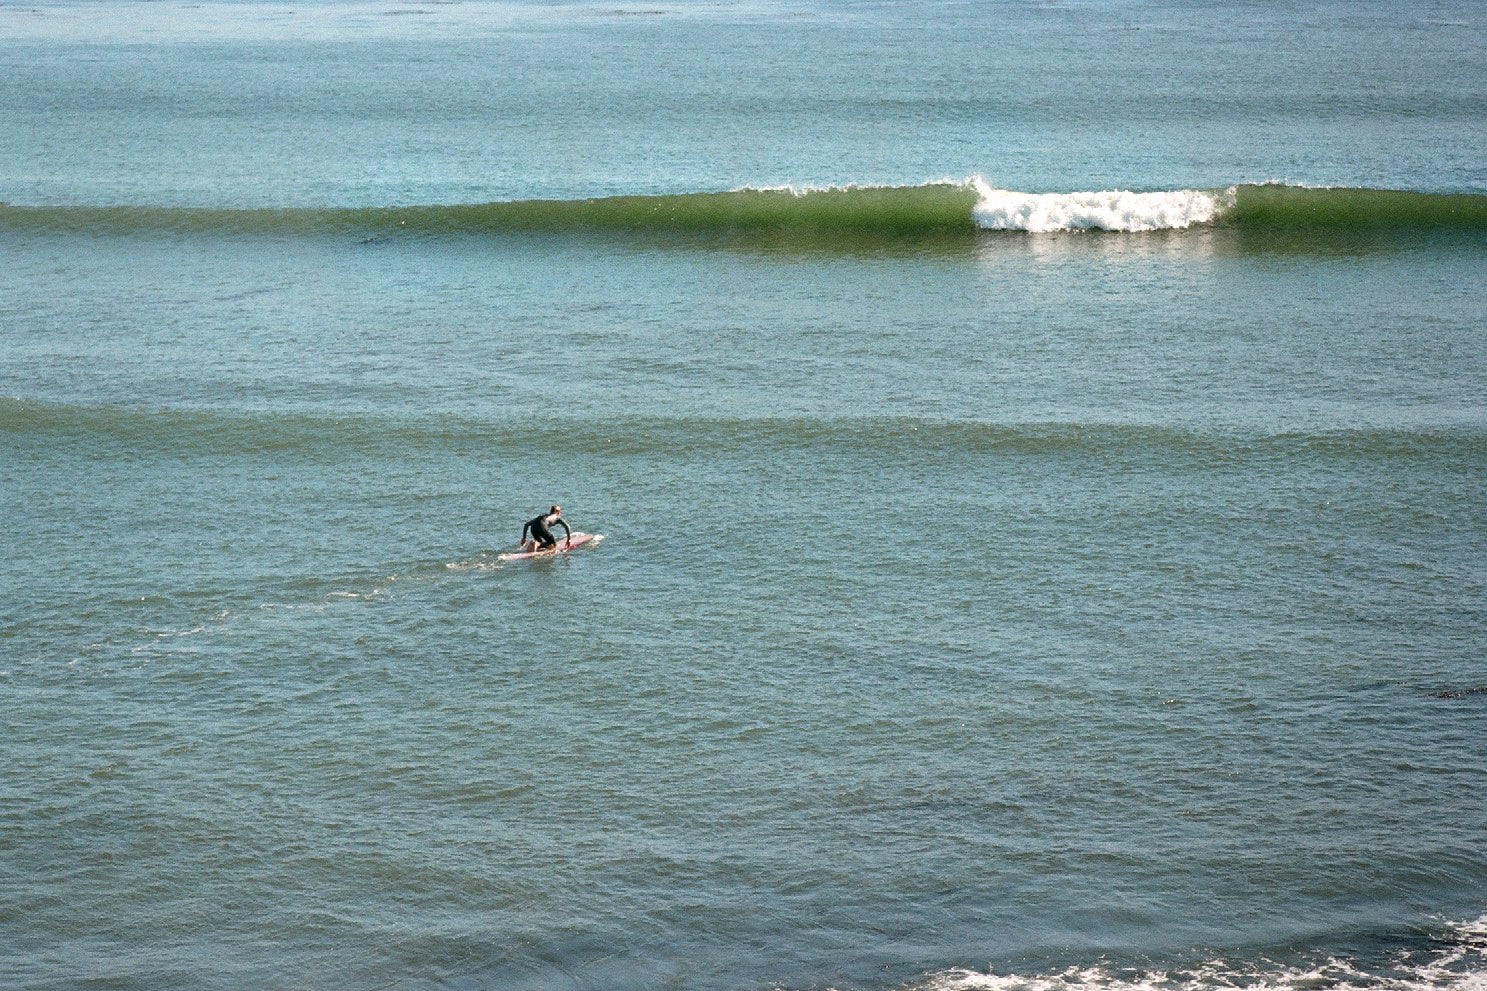 Surfer in the lineup by Ryan Tatar